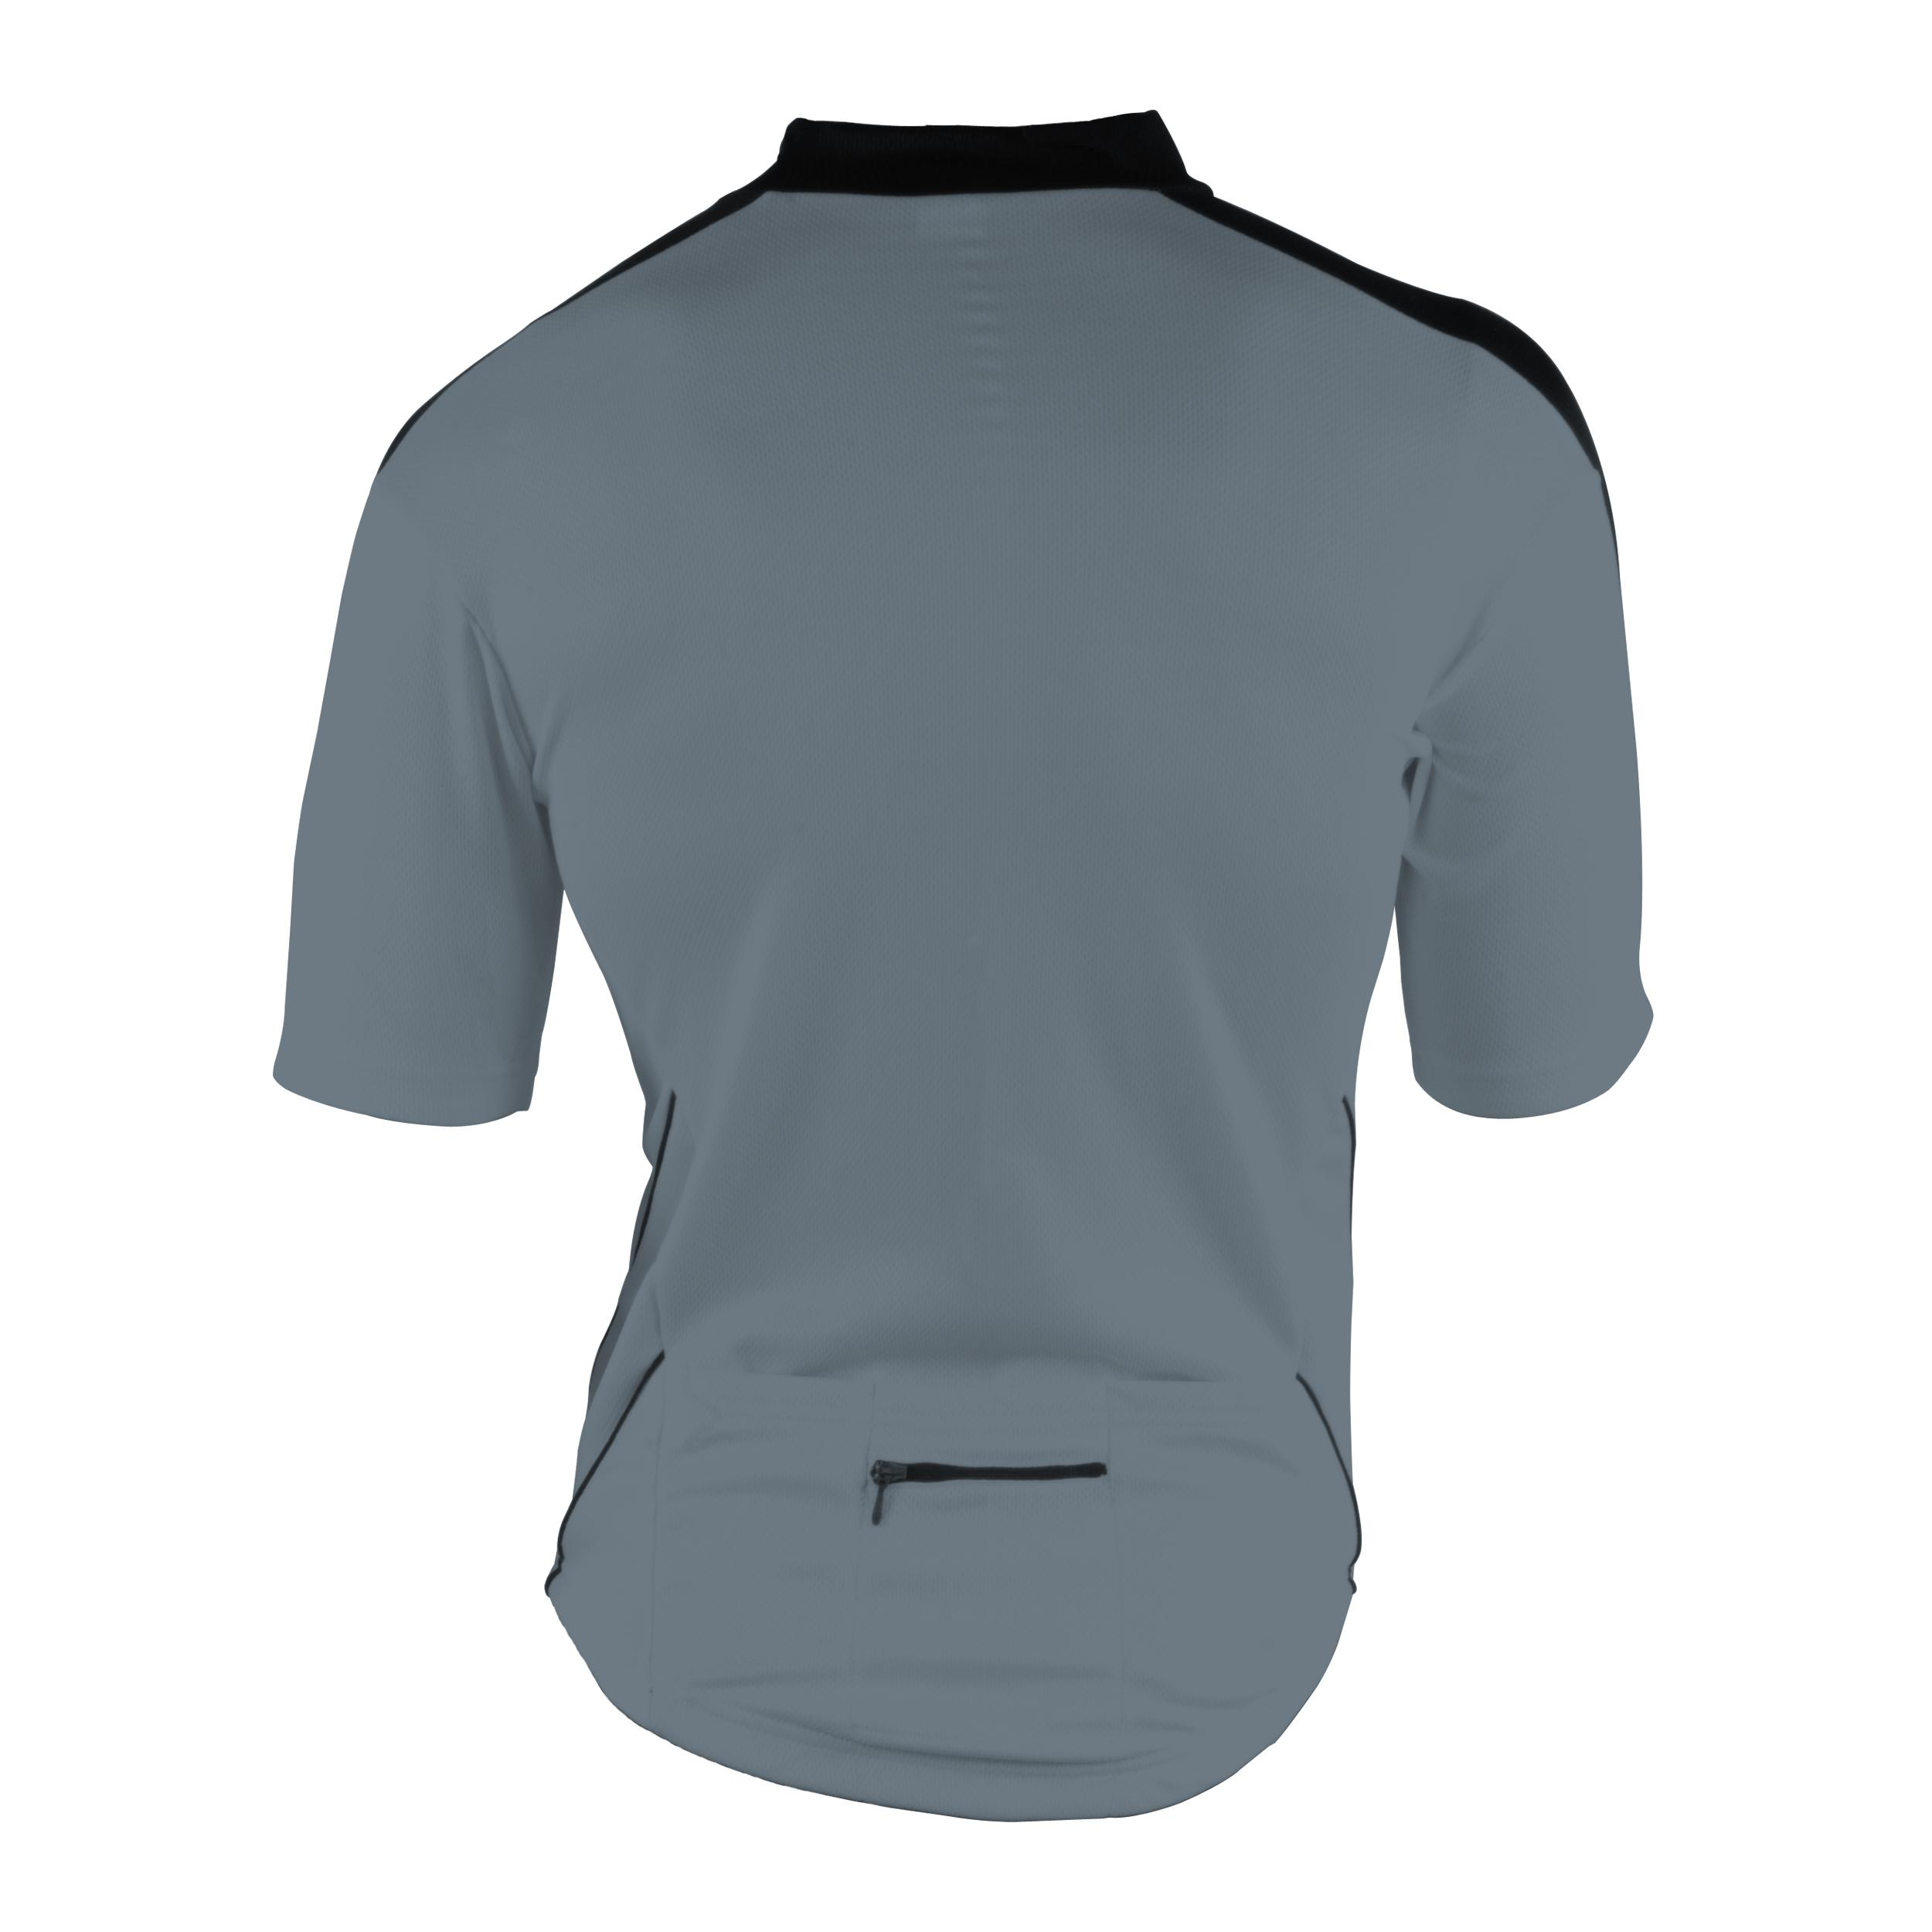 Cycle Force Men's M-Wave Dark Grey Bicycle Jersey (Medium) - Thumbnail 1